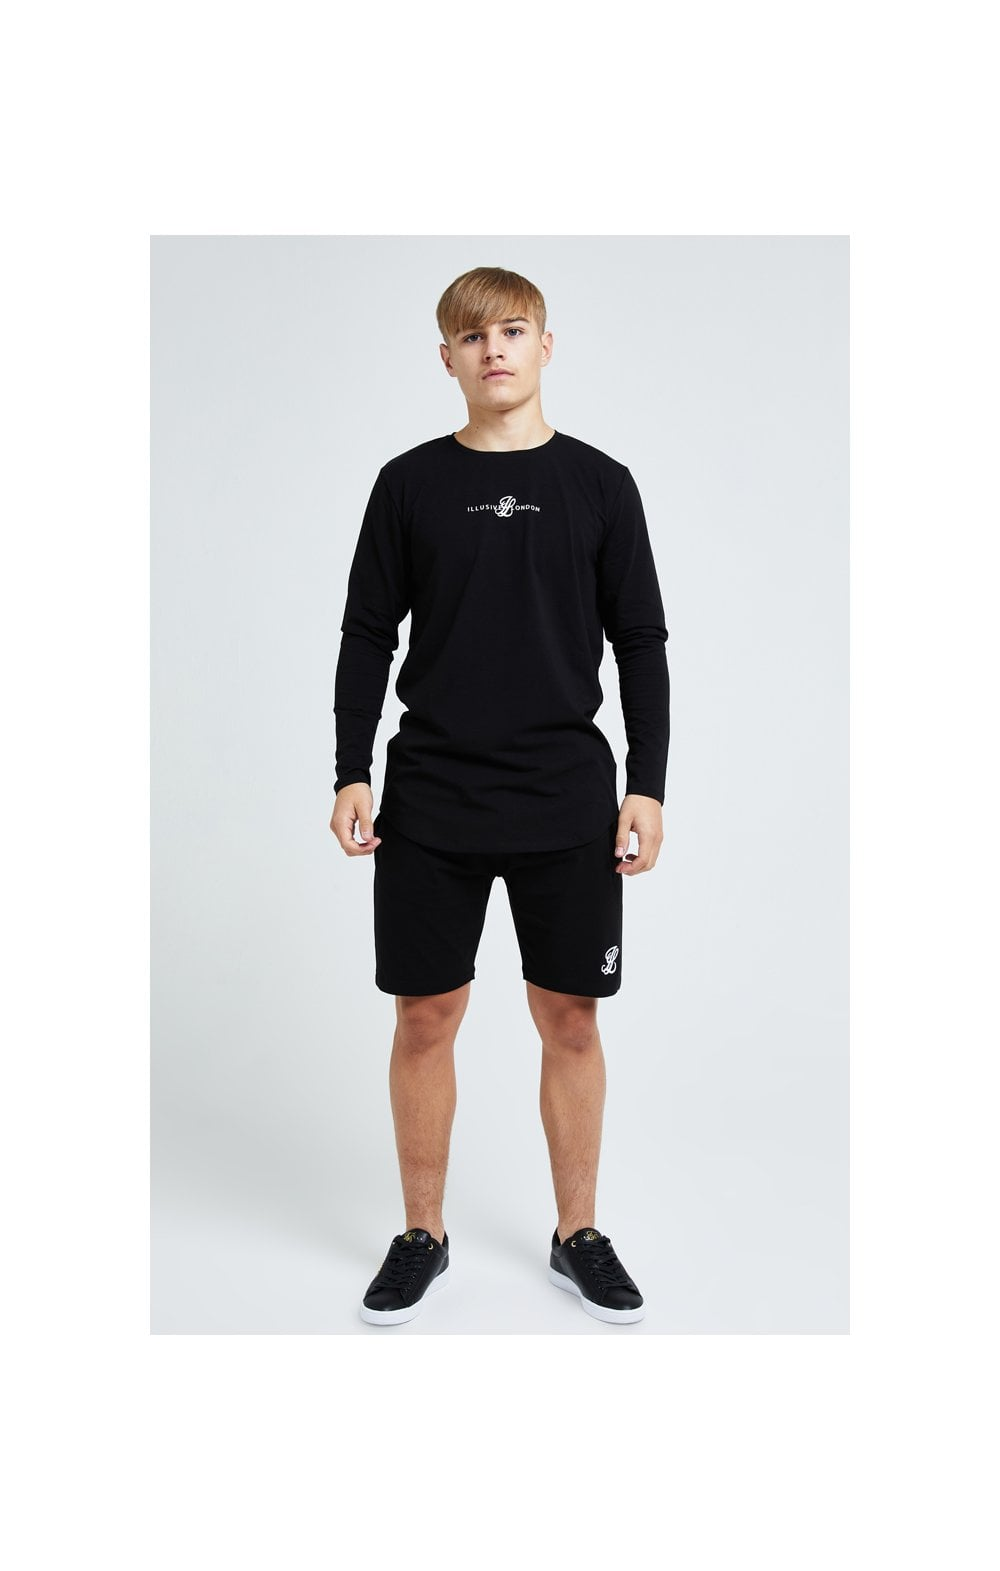 Illusive London Dual L/S Tee - Black (4)